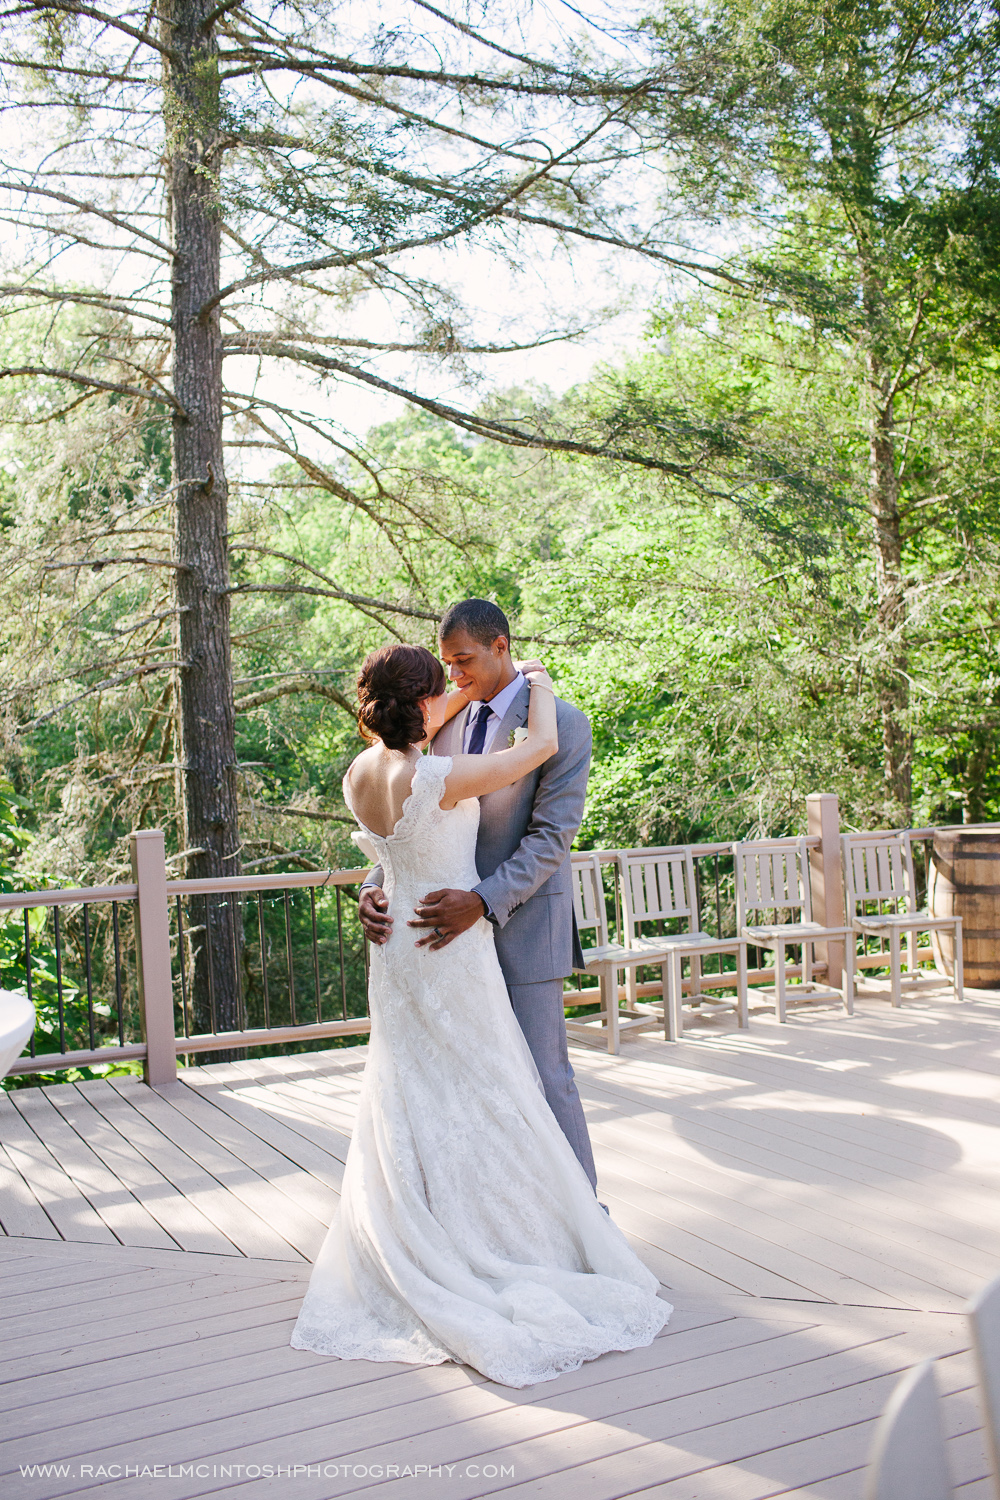 Rivers Ridge Lodge Wedding, Asheville North Carolina-98.jpg